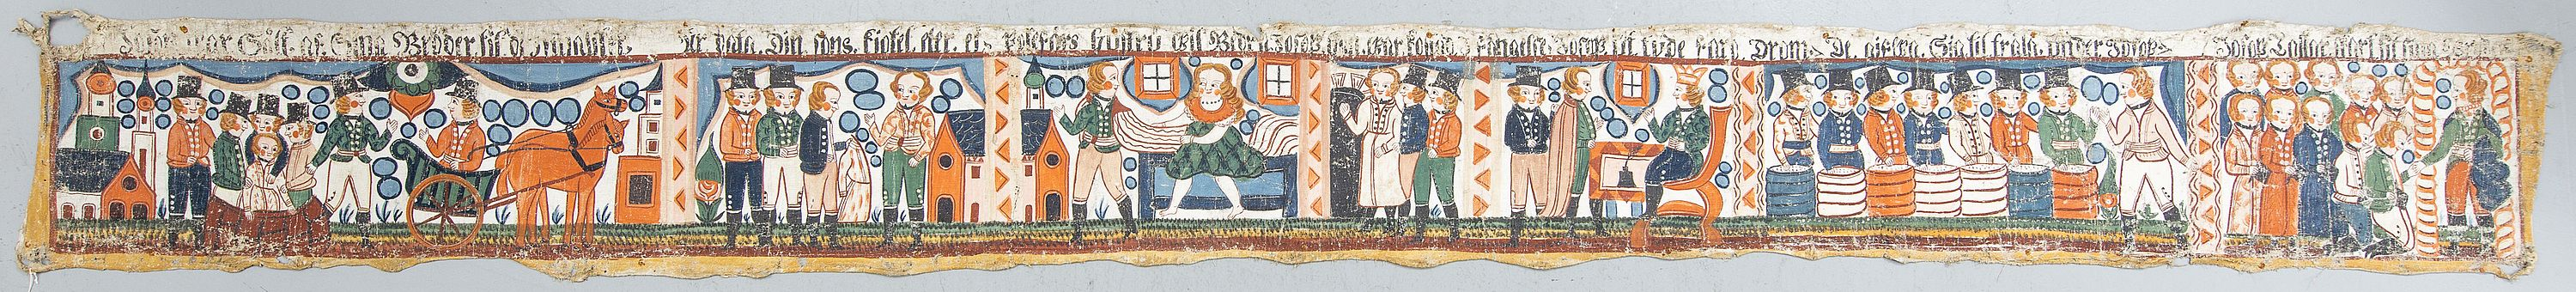 Traditional Wall Painting, Swedish, folk art, Småland/Halland, early 1800s. Rolled. ca 37 x 366 cm.